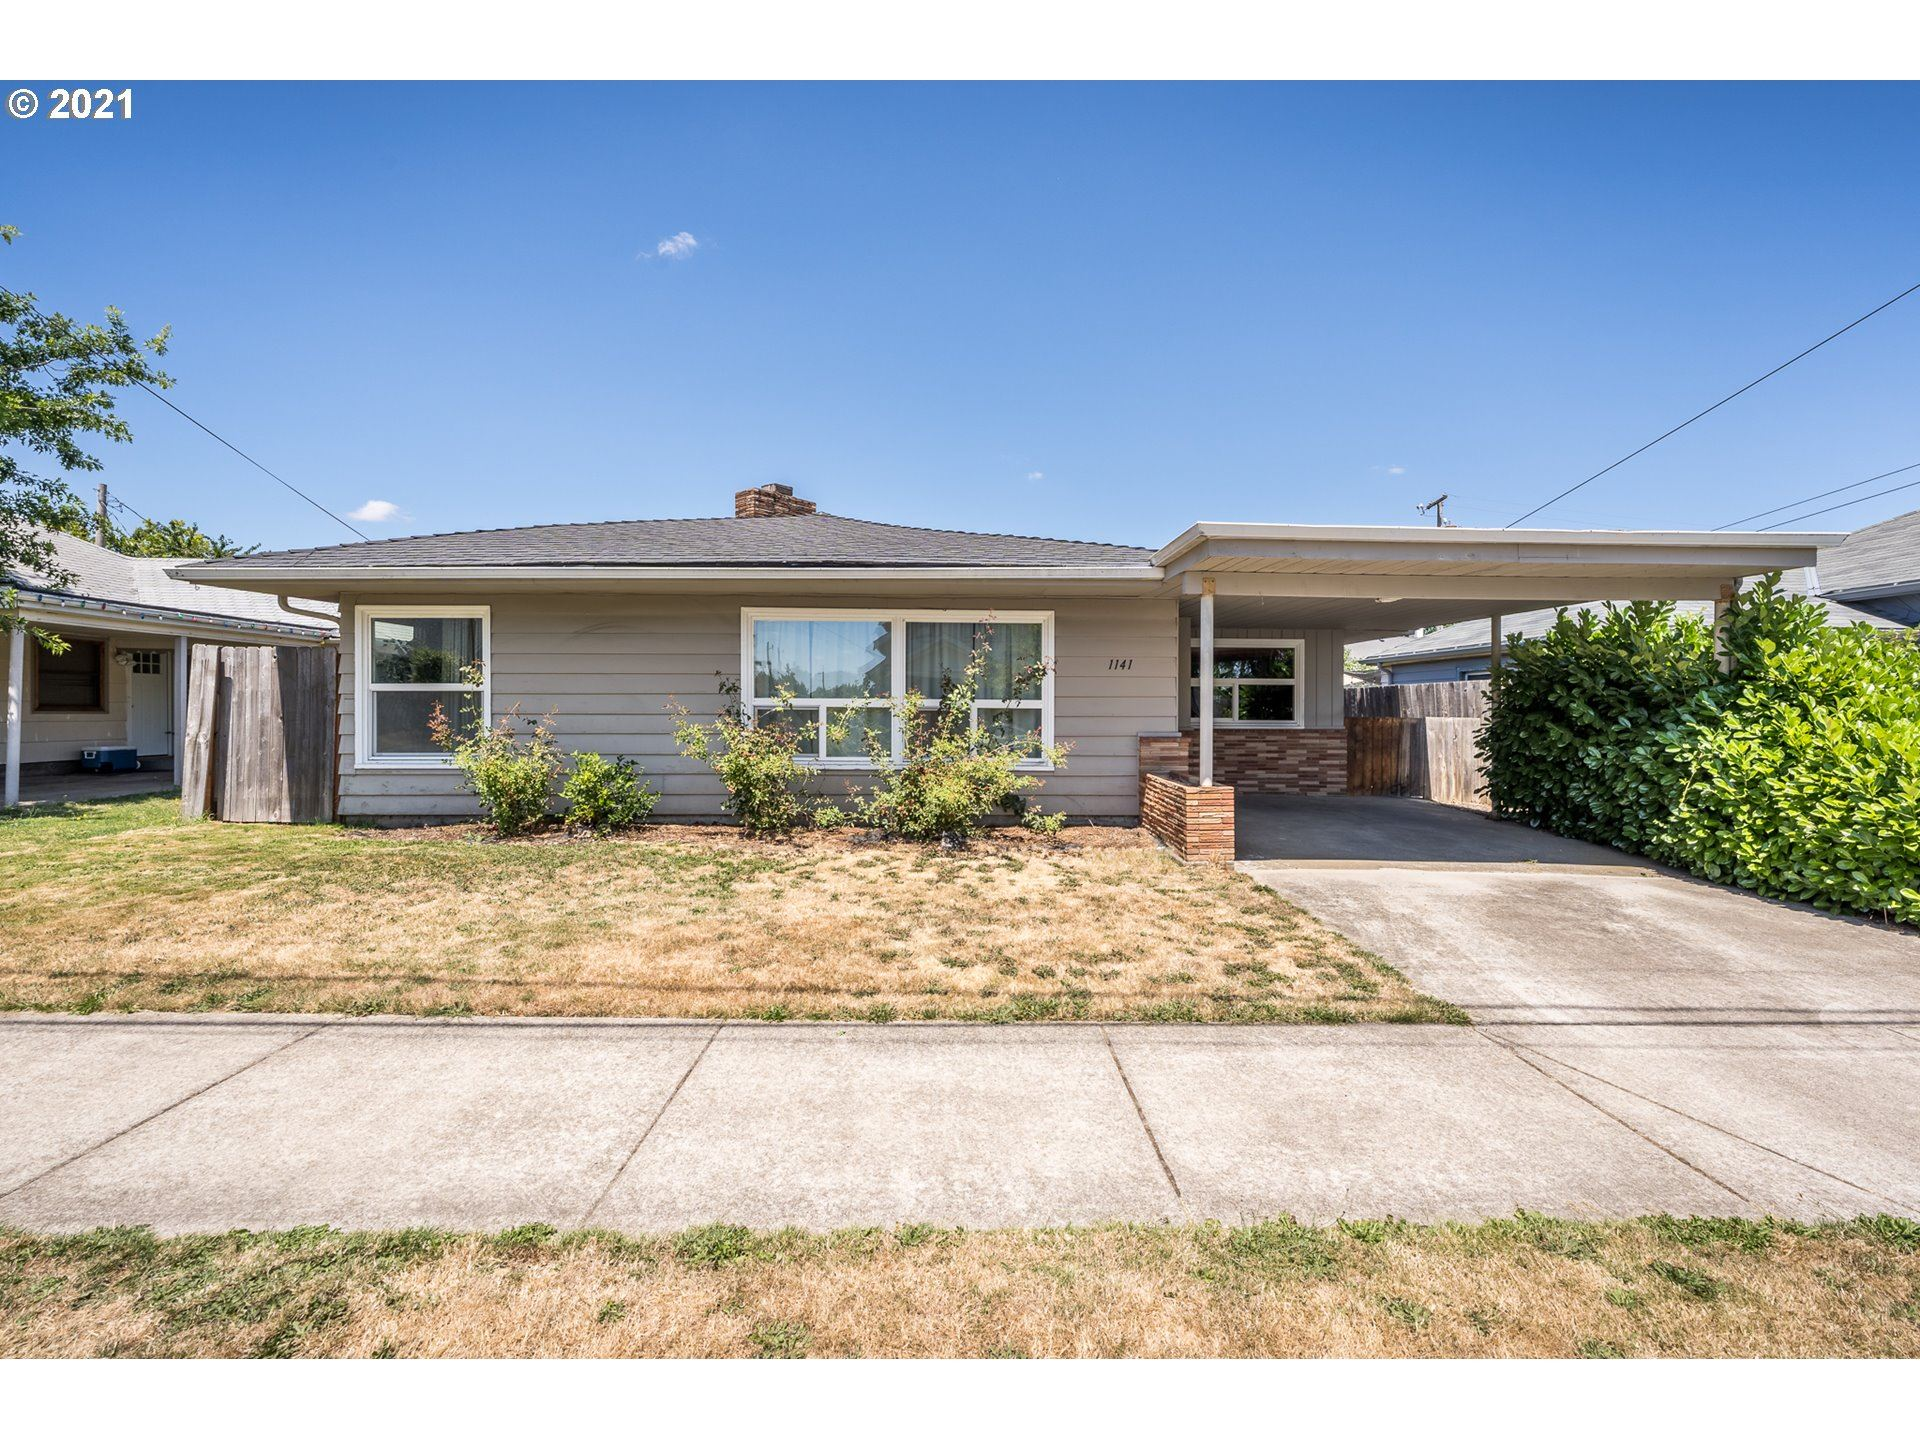 1141 12TH AVE SW, Albany, OR 97321 - MLS#: 21317882